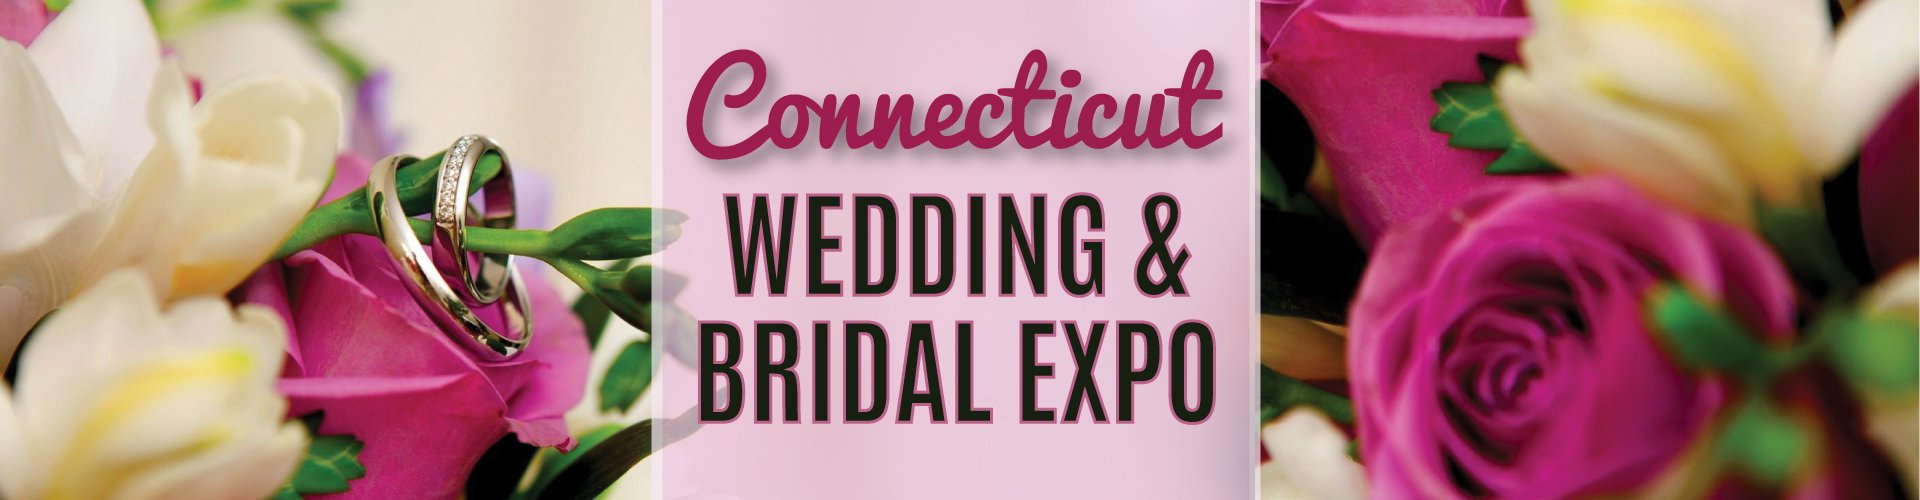 Ct Big List 2020.Connecticut Wedding Bridal Expo 2020